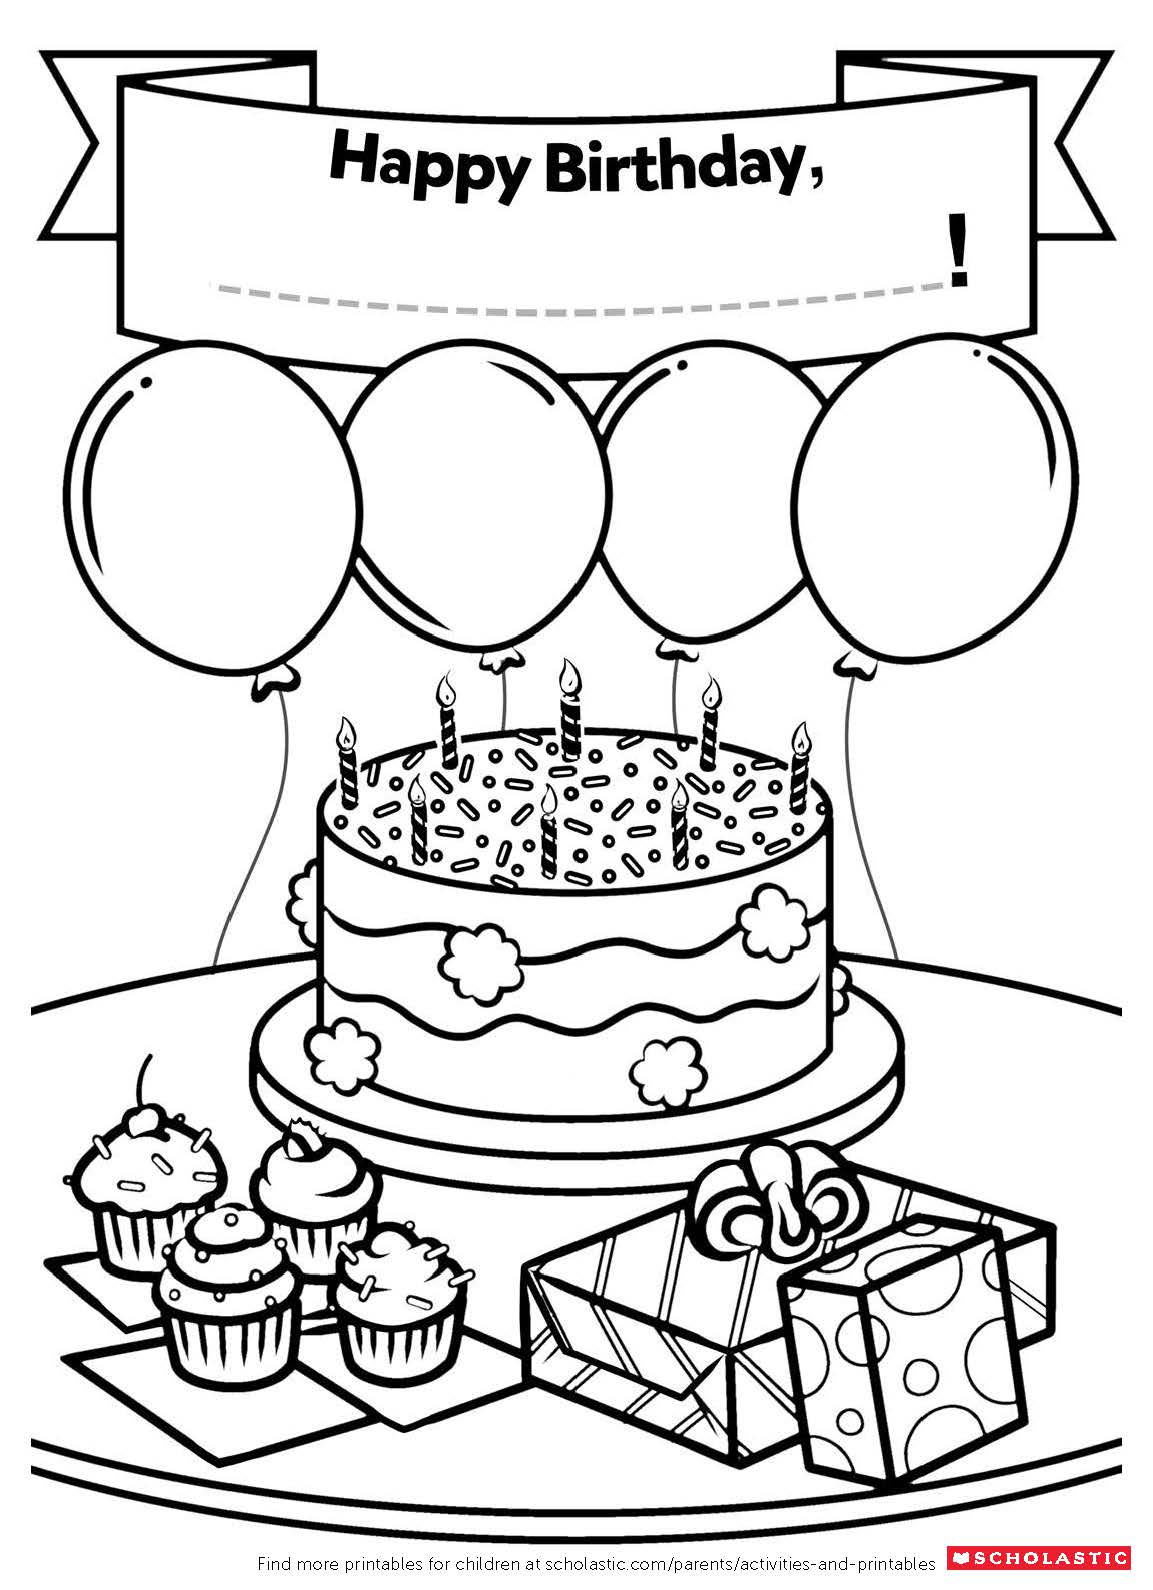 coloring printable birthday cards free happy birthday grandma coloring pages getcoloringpagescom printable coloring cards free birthday